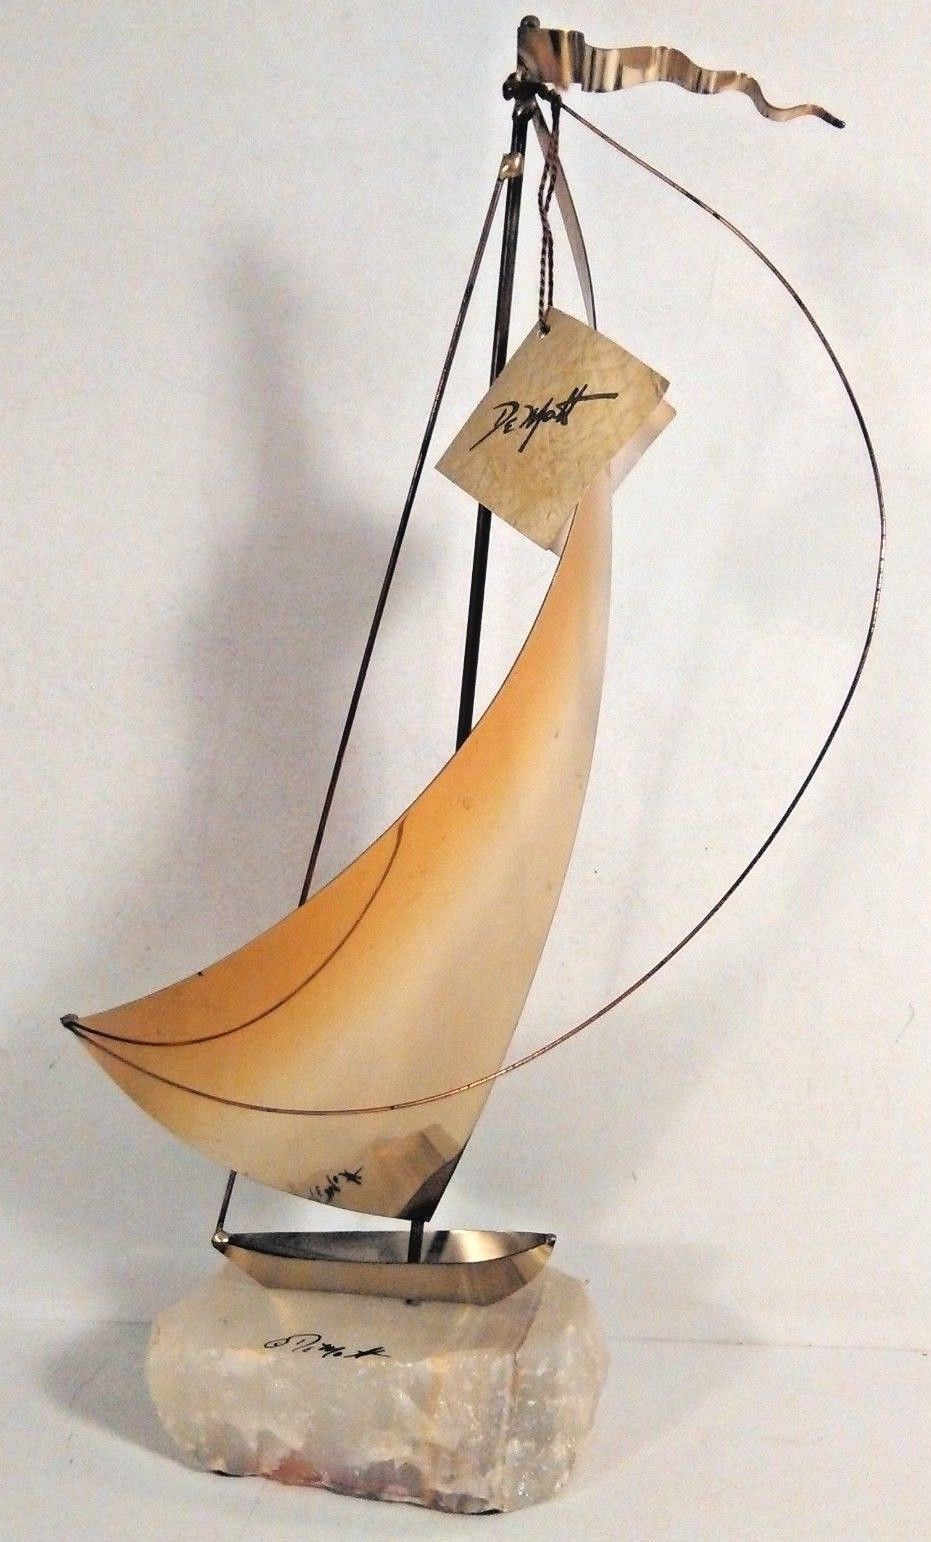 "VINTAGE RARE 1975 DE MOTT SIGNED BRASS SAILBOAT ON ONYX 13"" ORIGINAL TAG"